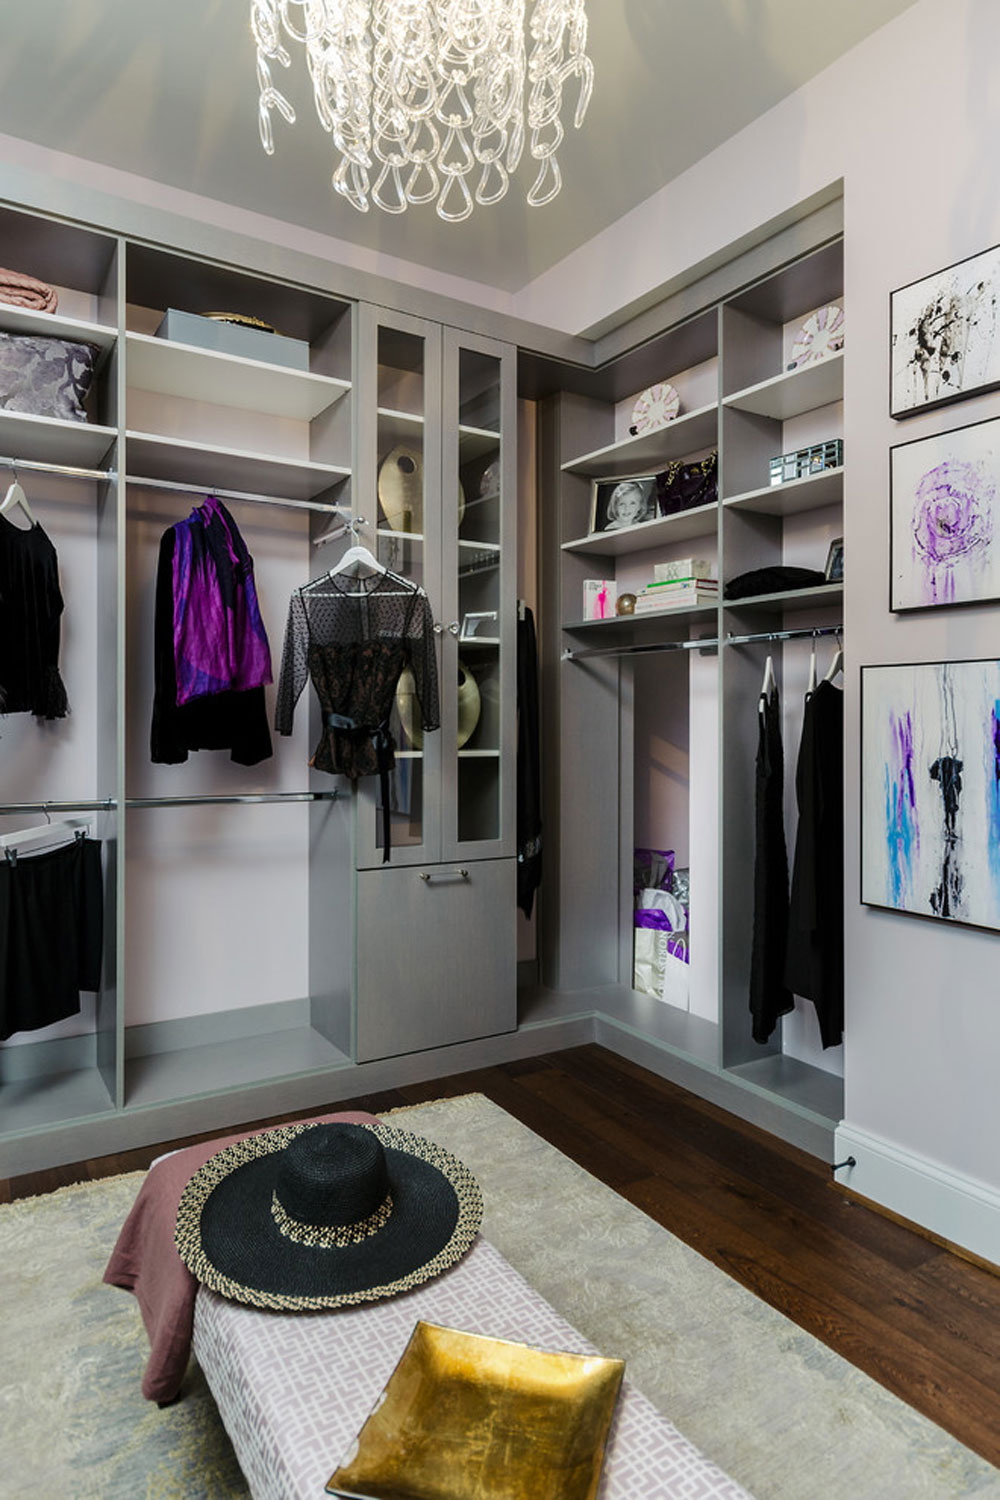 161 design ideas for the wardrobe in the master bedroom